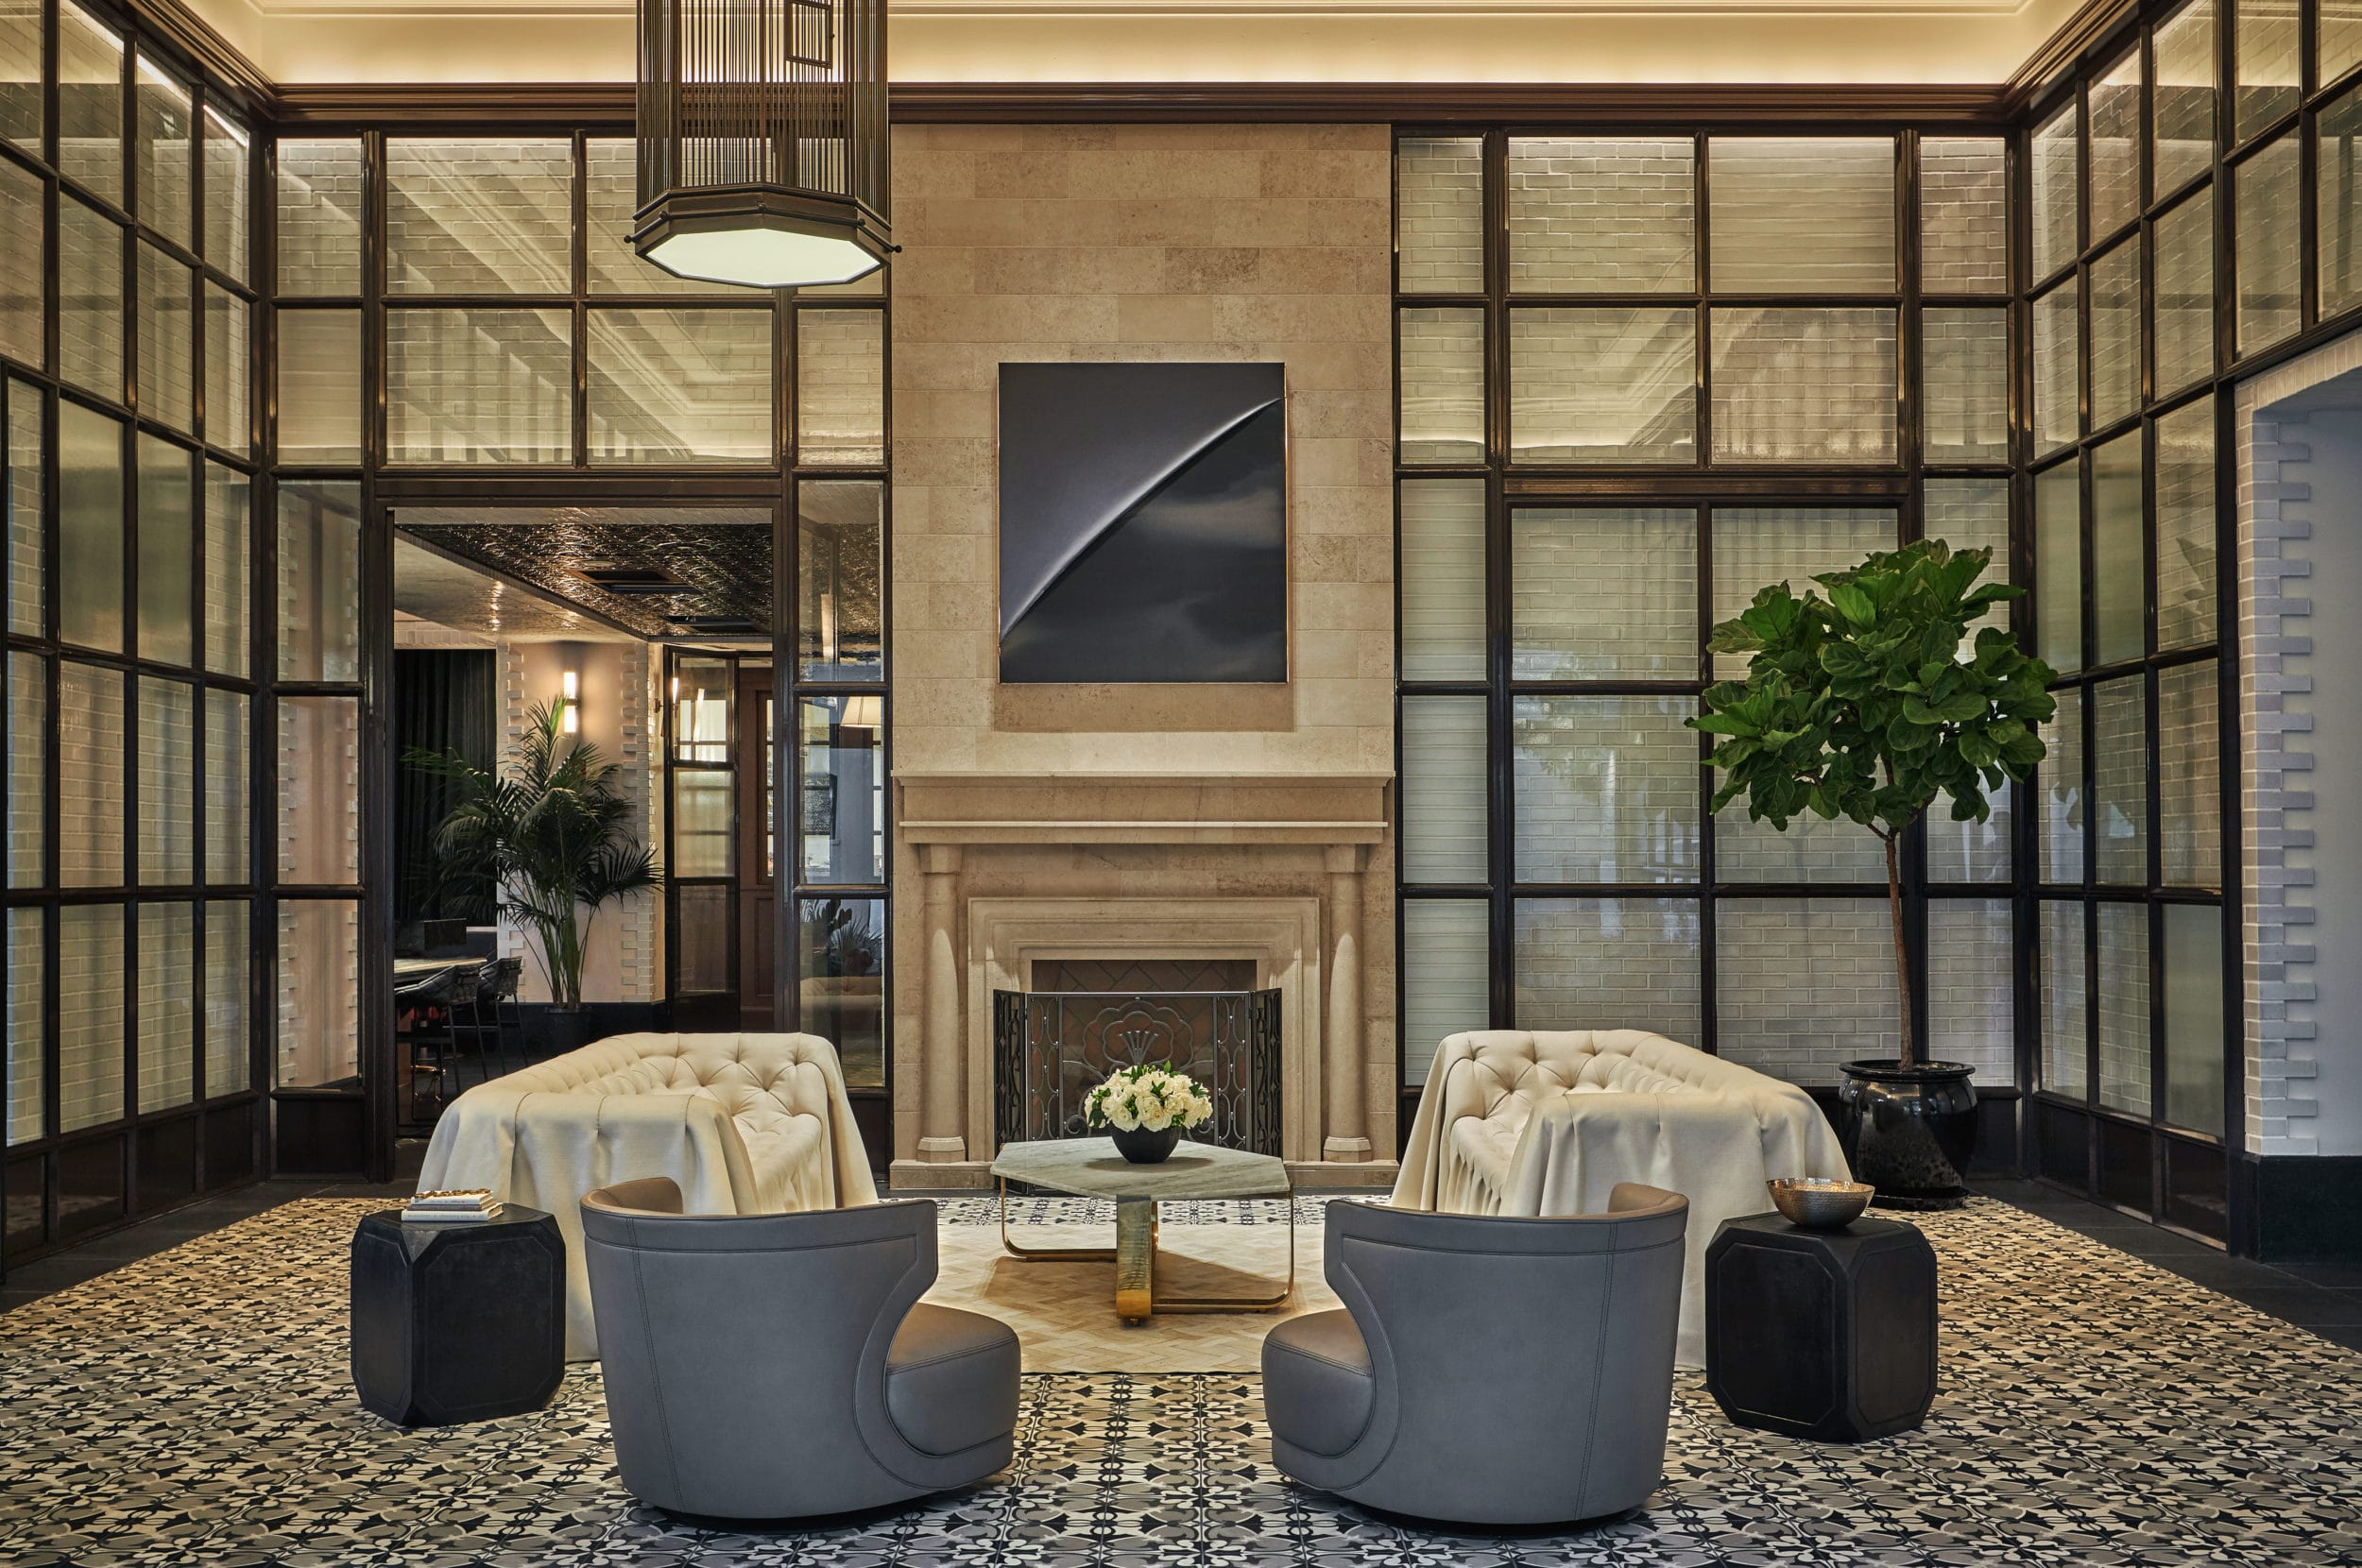 Pendry San Diego Hotel Detailed Guide & How to Book - La